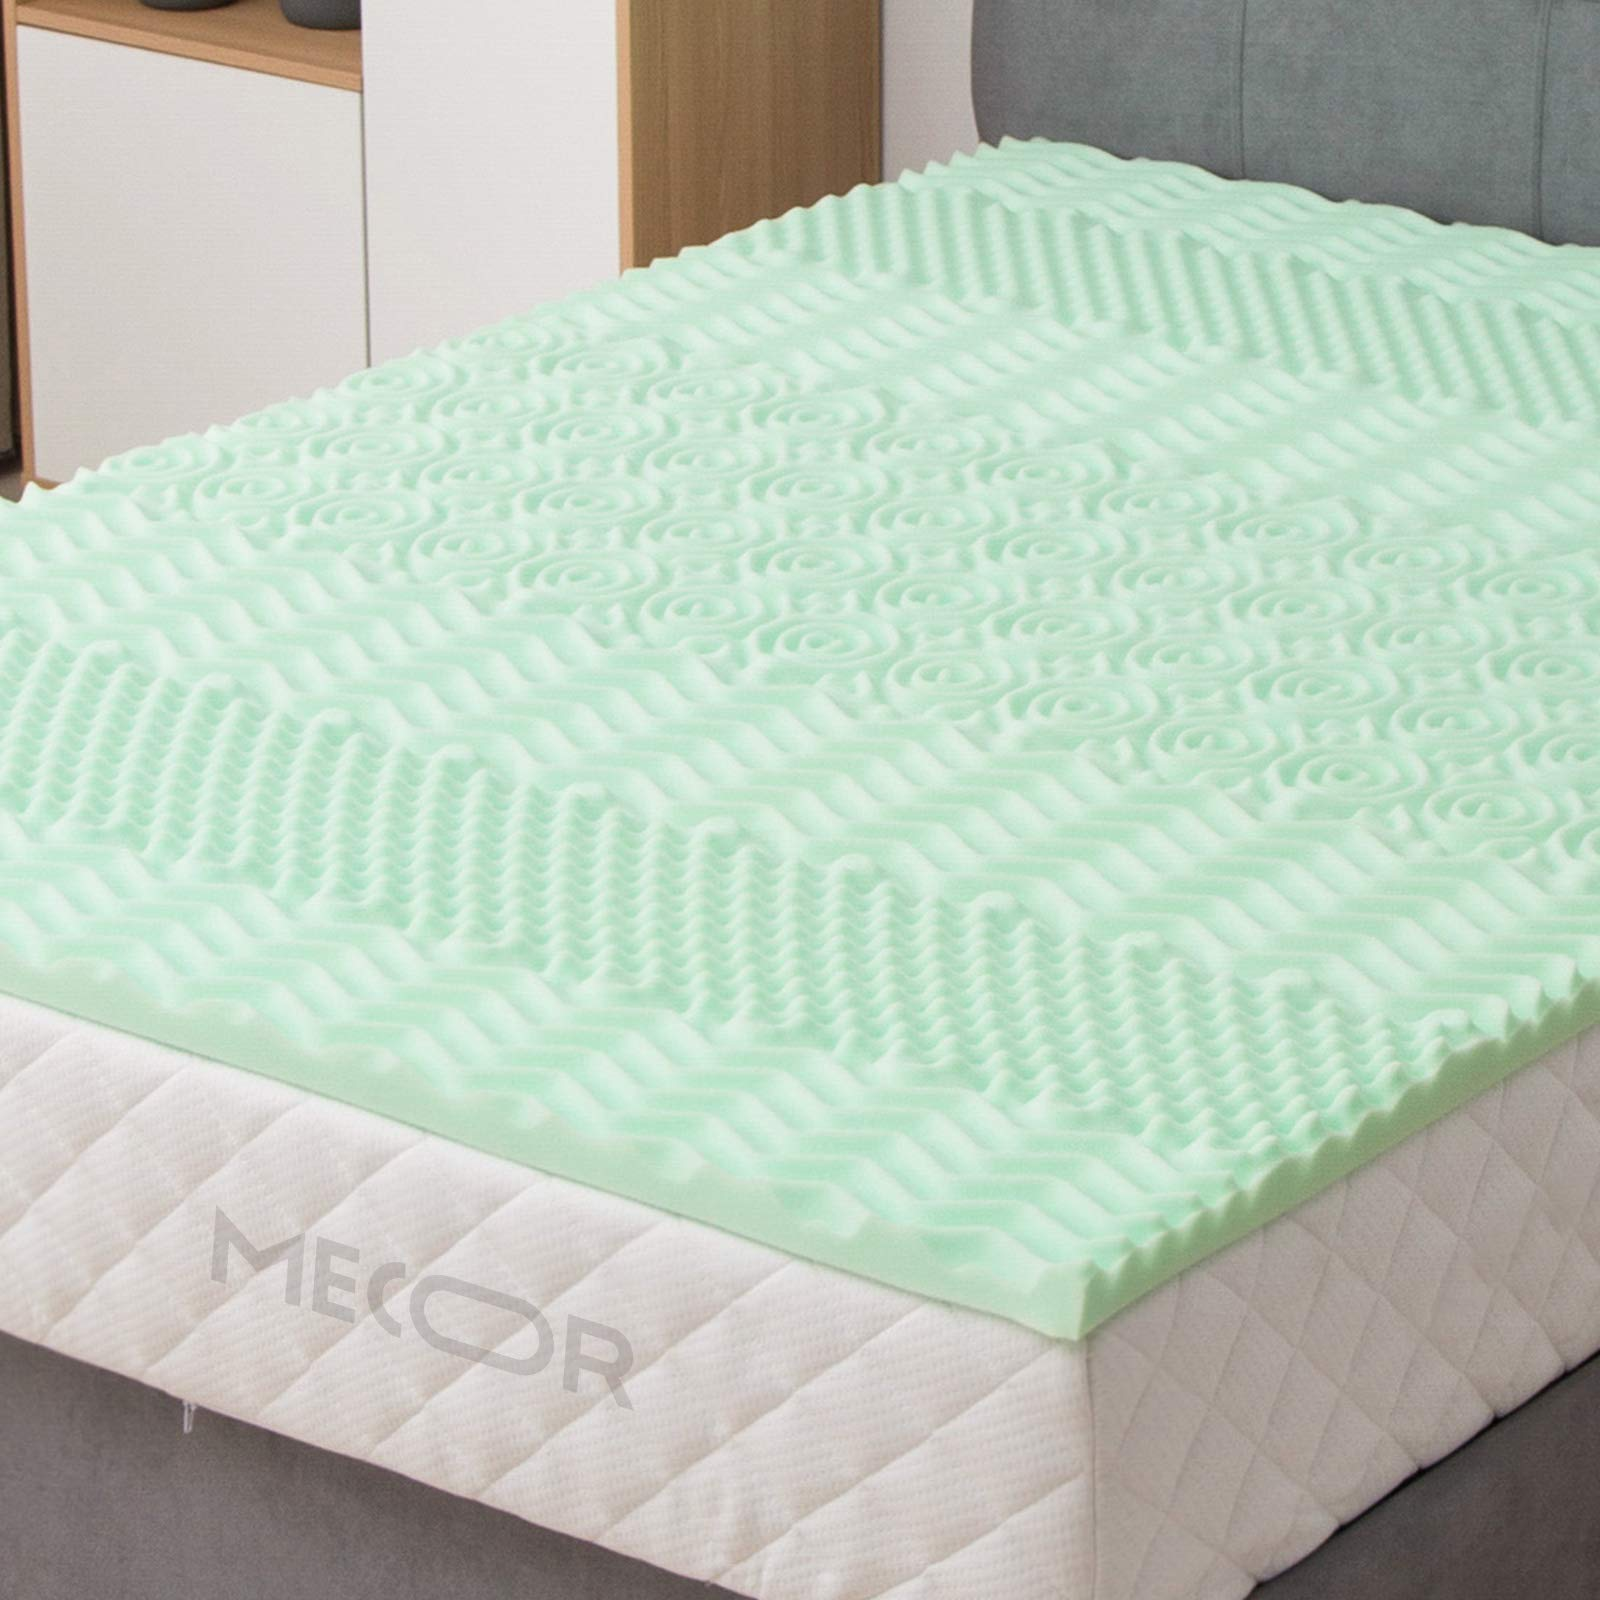 LAGRIMA 2-inch 2in Mattress Topper, 7-Zone Queen Size Memory Foam Mattress Topper, CertiPUR-US Certified,Green Tea with Pattern by LAGRIMA